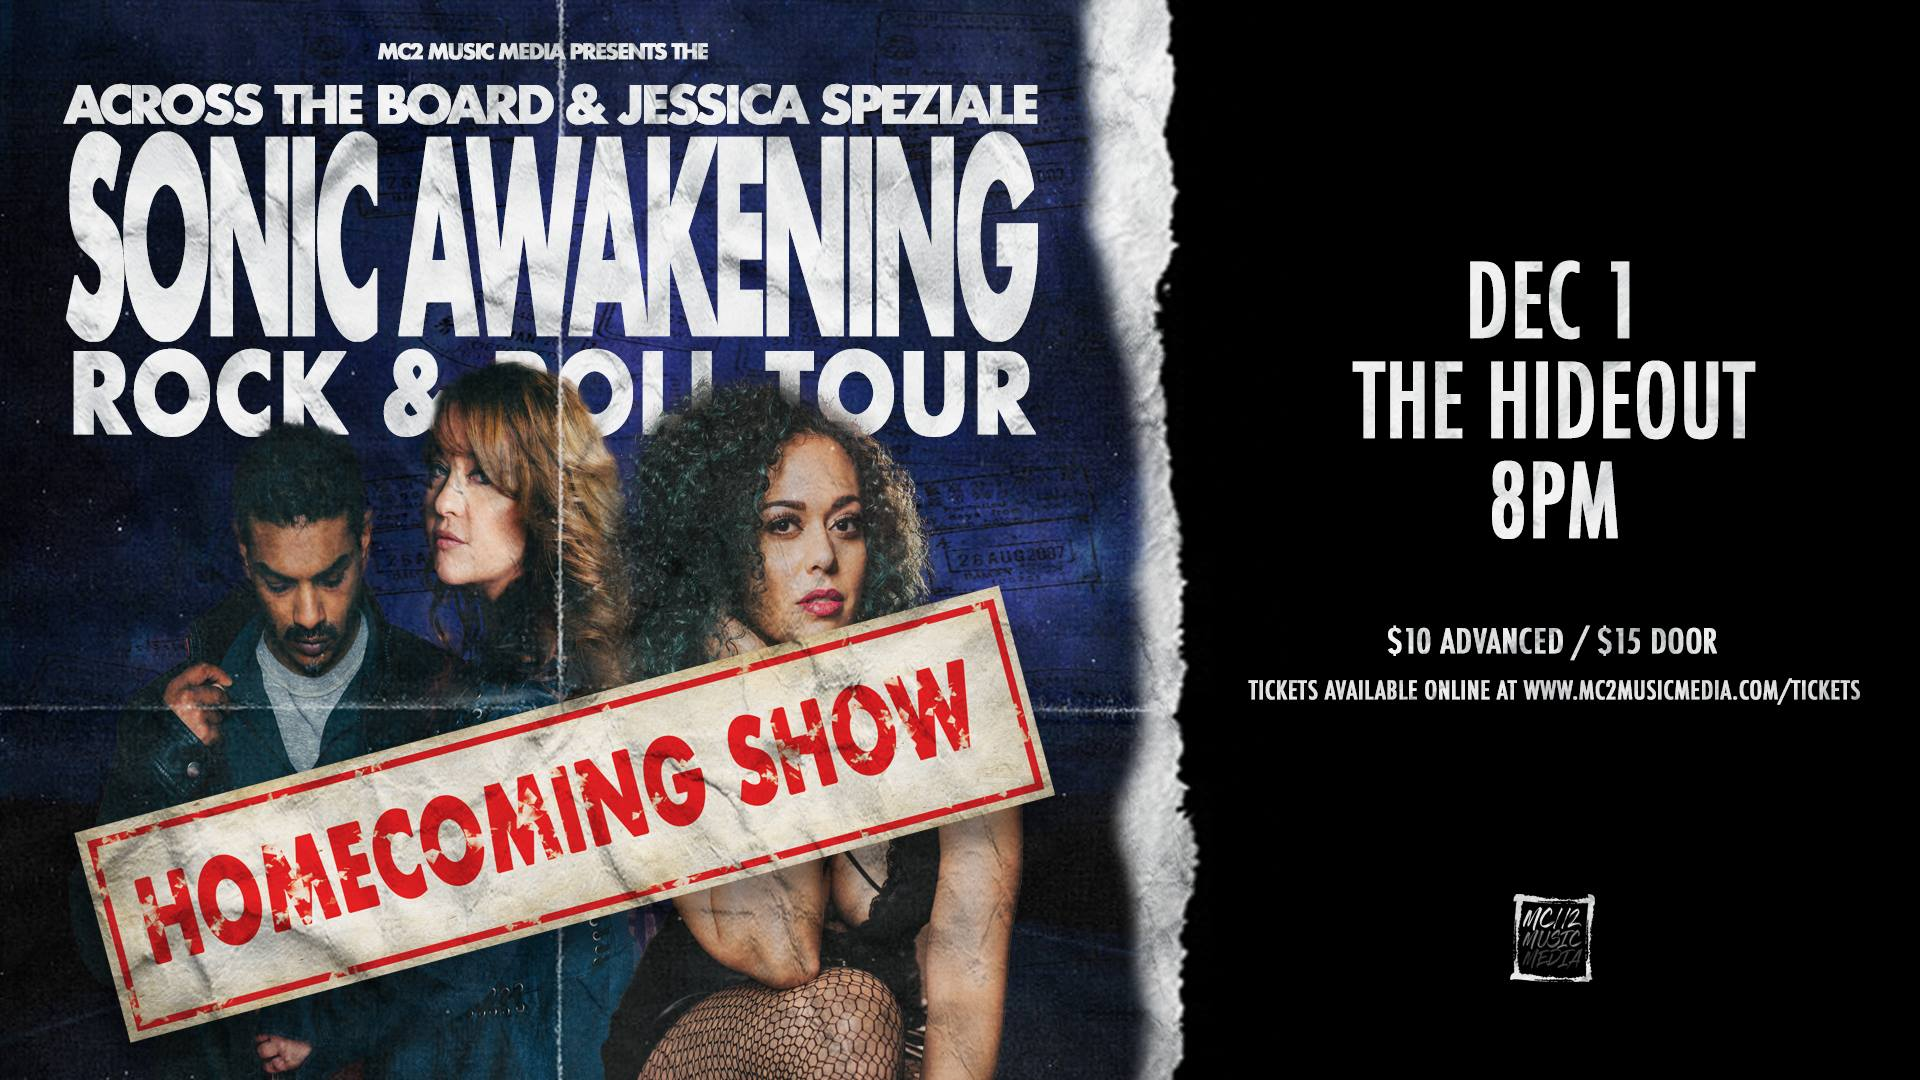 Back to where it all started, MC2 Music Media presents THE SONIC  AWAKENING ROCK & ROLL TOUR: HOMECOMING SHOW featuring Jessica  Speziale & Across The Board LIVE December 1st at The Hideout in  Toronto.  Tickets on Sale NOW!  http://www.mc2musicmedia.com/tickets  Be sure to get yours quick as the last show was a SELL OUT!  ----------  Across The Board & Jessica Speziale join forces to bring you THE SONIC AWAKENING ROCK & ROLL TOUR 2018!